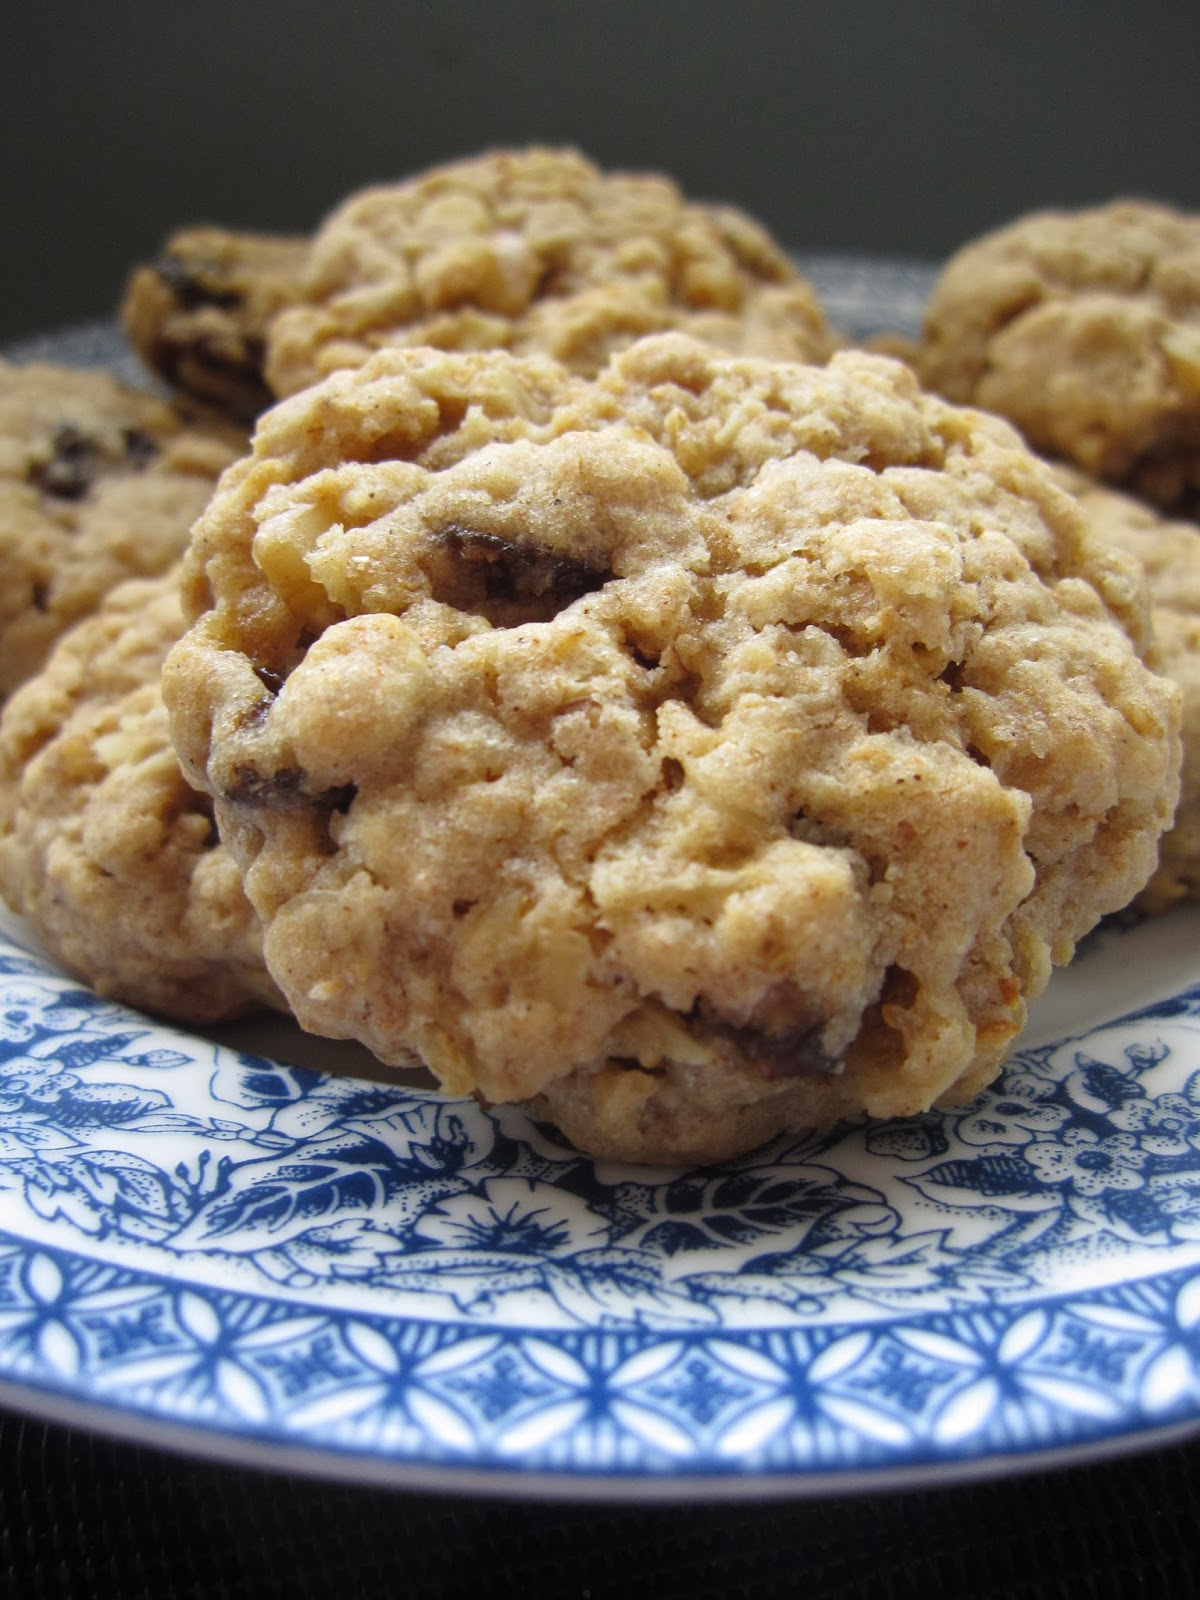 Walnut Oatmeal Raisin Cookies | A Taste of Madness